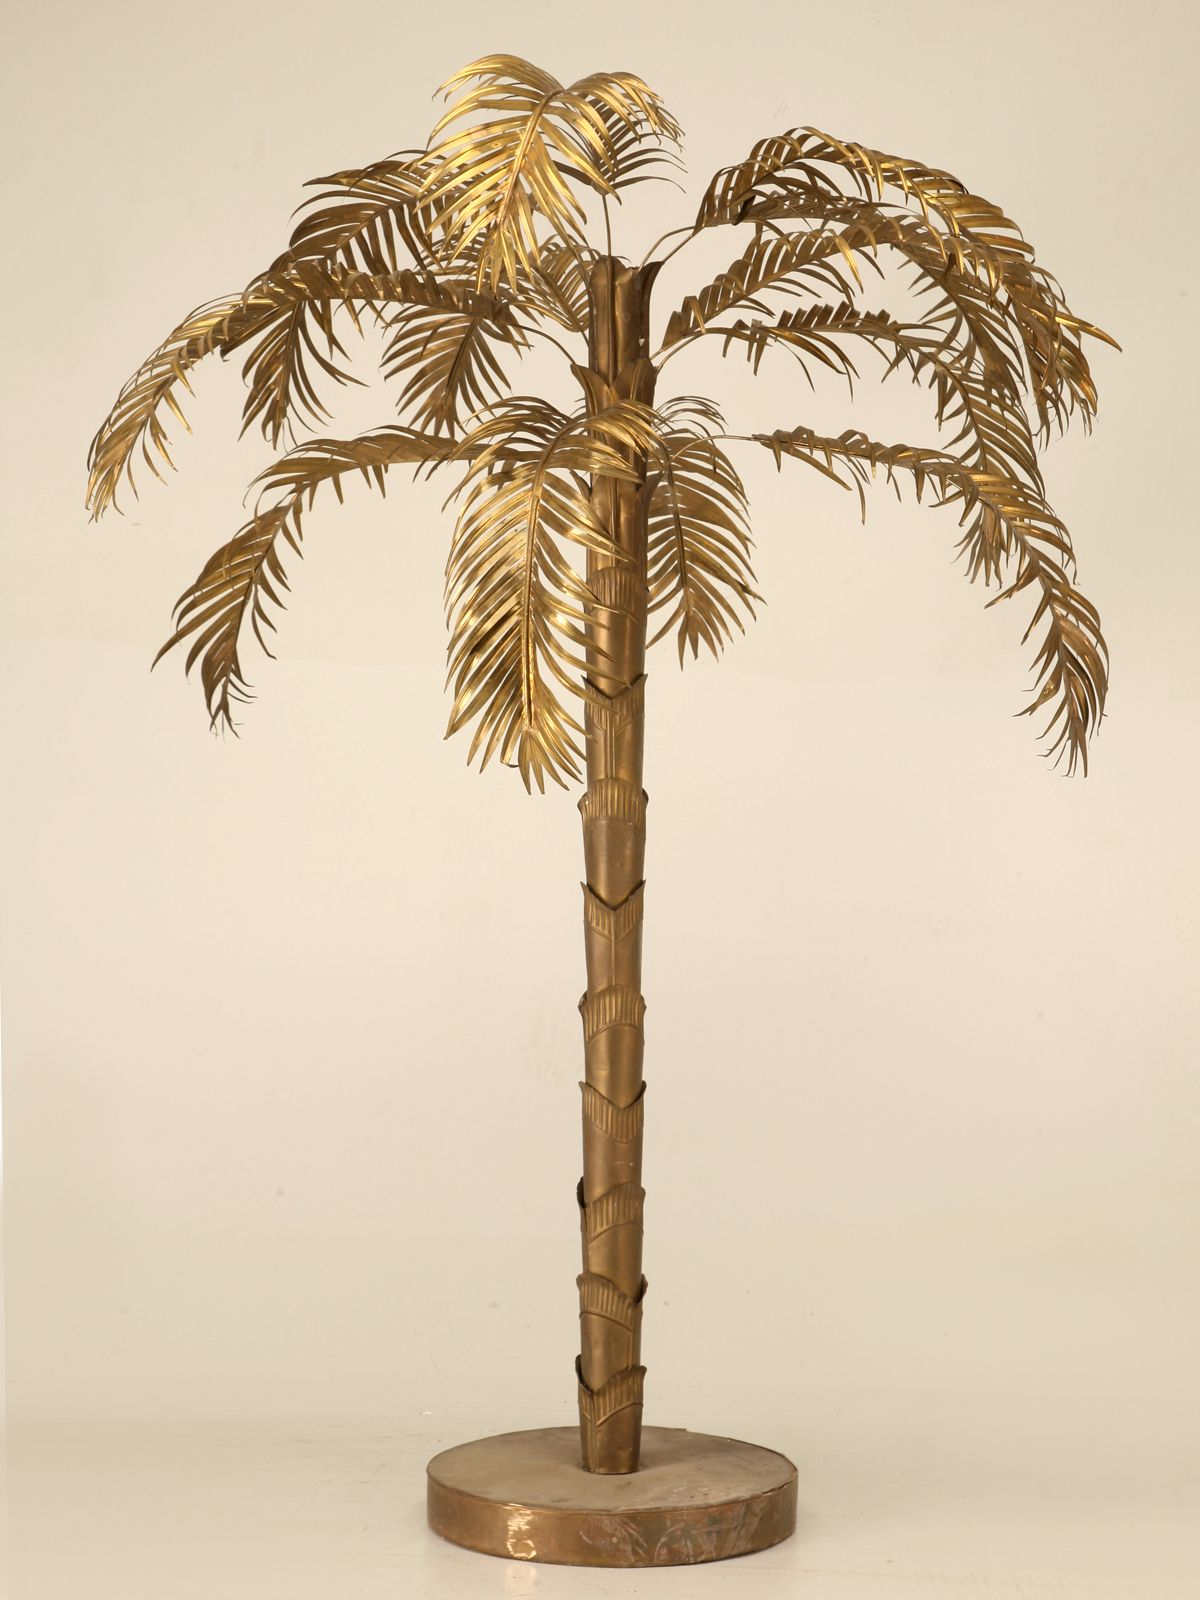 Vintage French Decorative Brass Palm Tree Palm Tree Decorations Antique Furniture For Sale Gold Decor